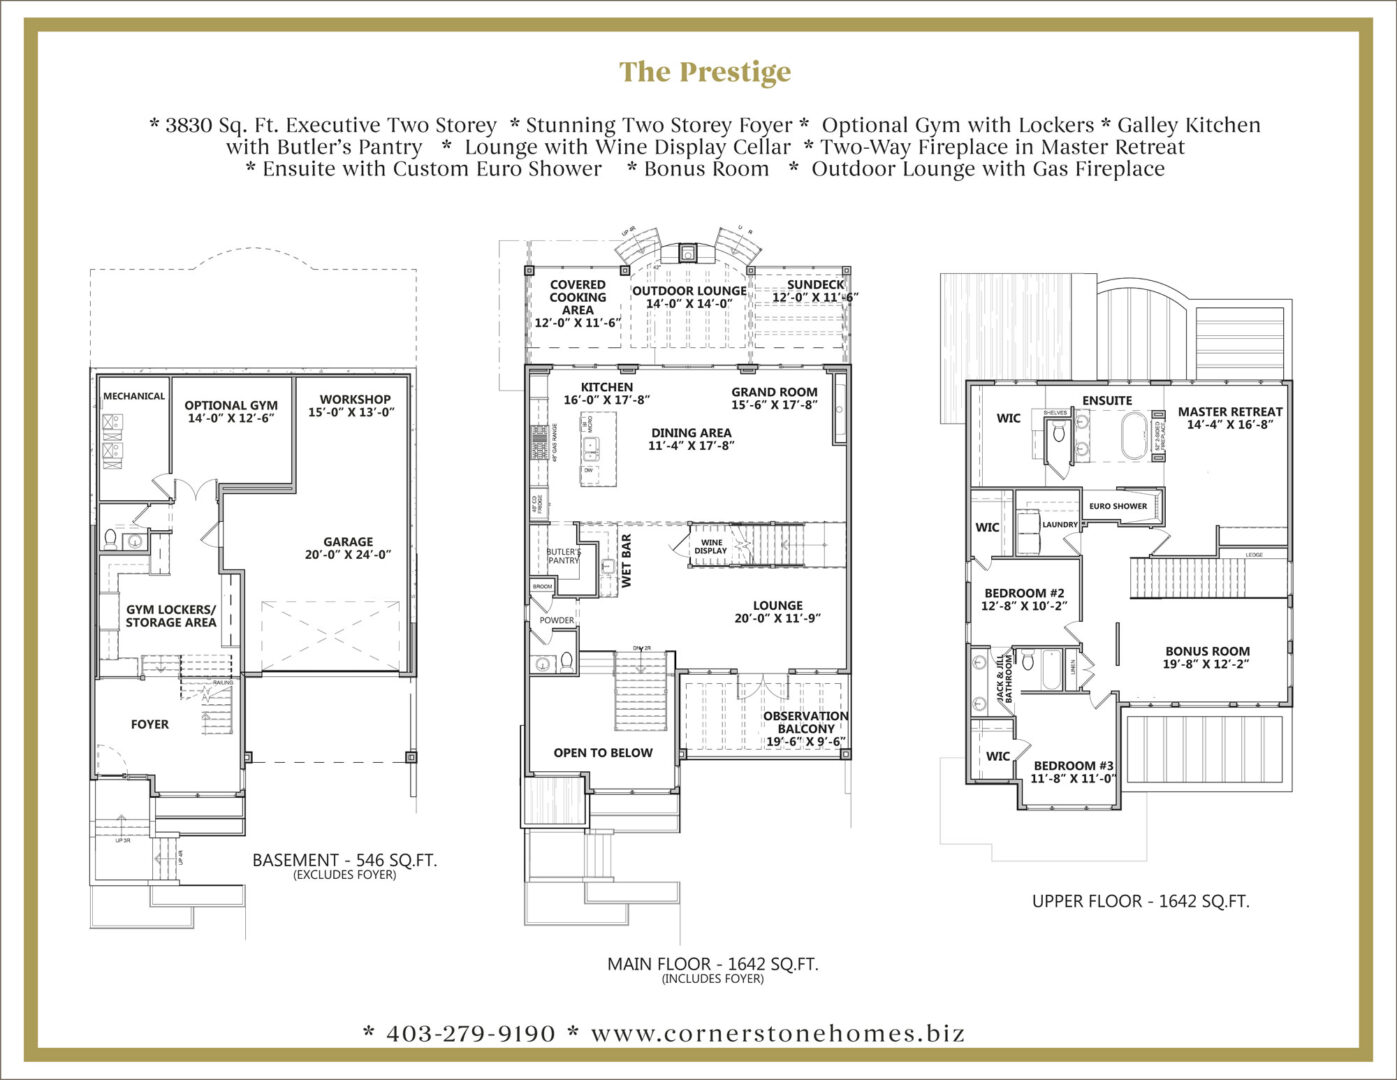 NEW-The-Prestige-FLOOR-PLANS